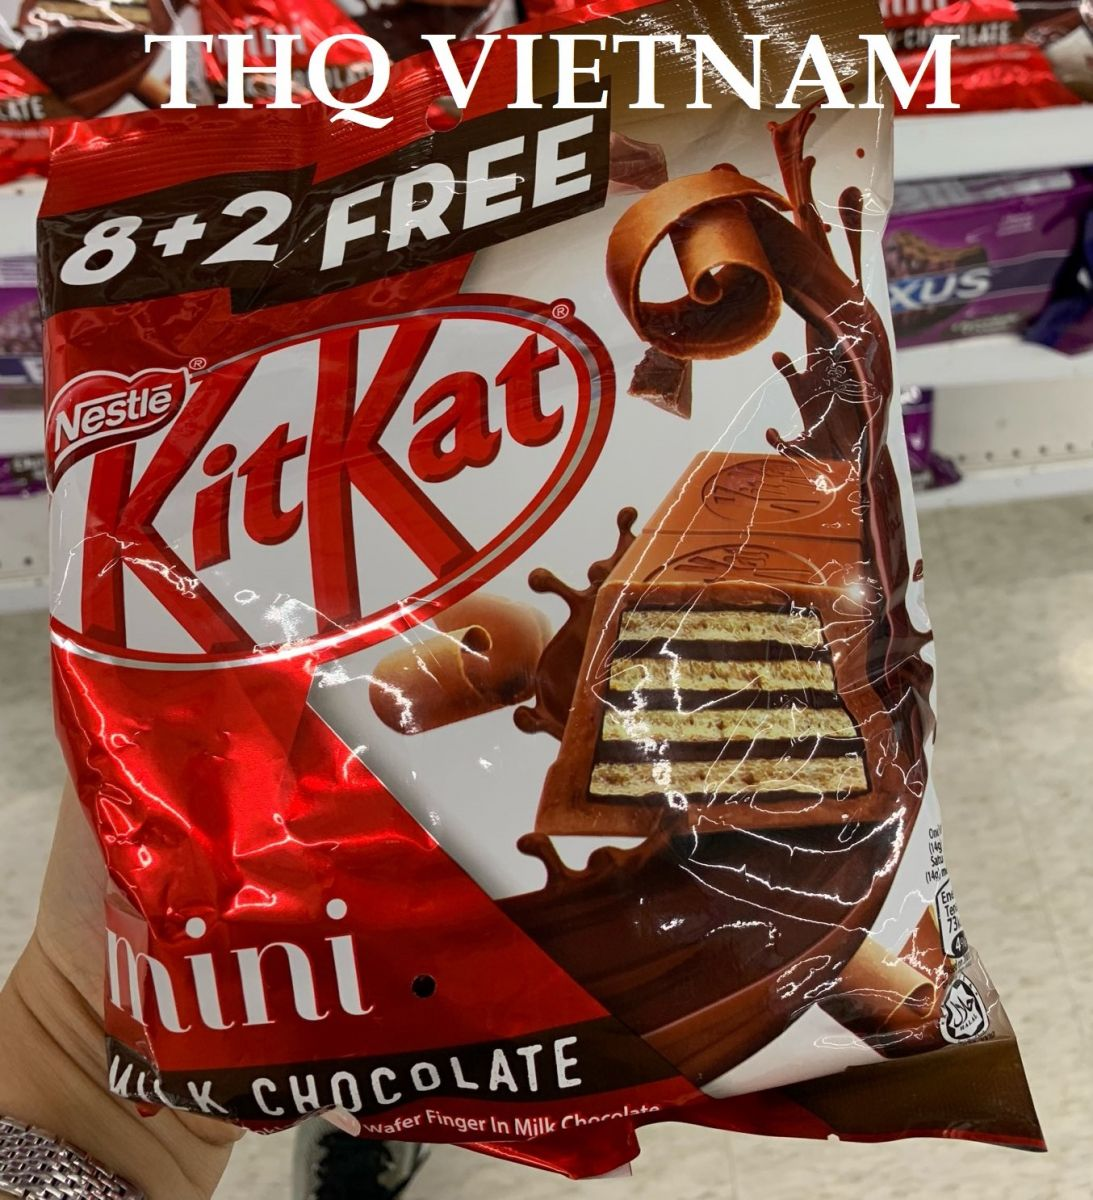 Kitkat Bars Mini Milk Chocolate 8+2free